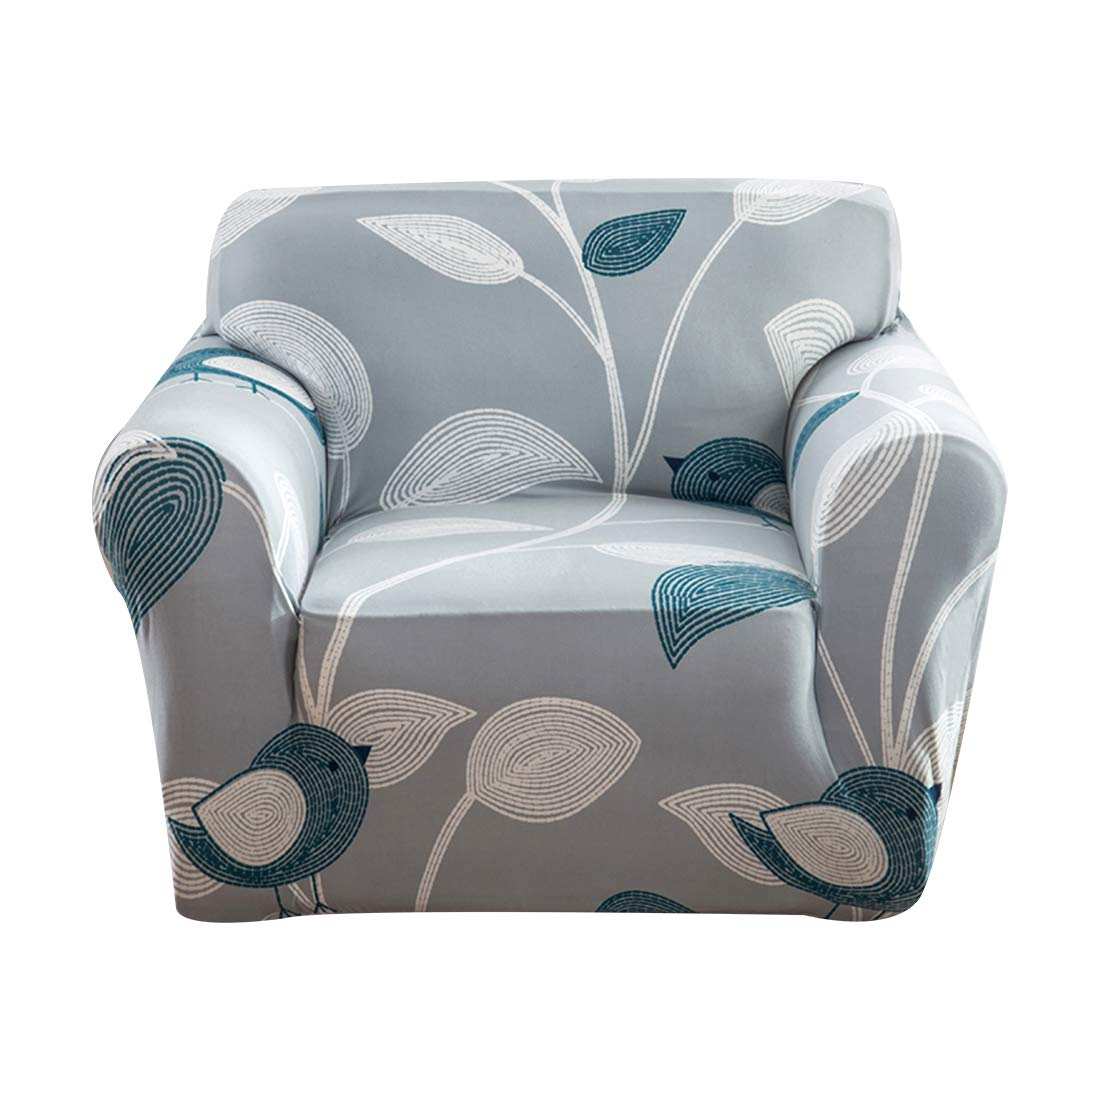 FORCHEER Armchair Slipcover Stretch Printed Sofa Cover Furniture Protector for Living Room 1 PC(Style #8,Chair)